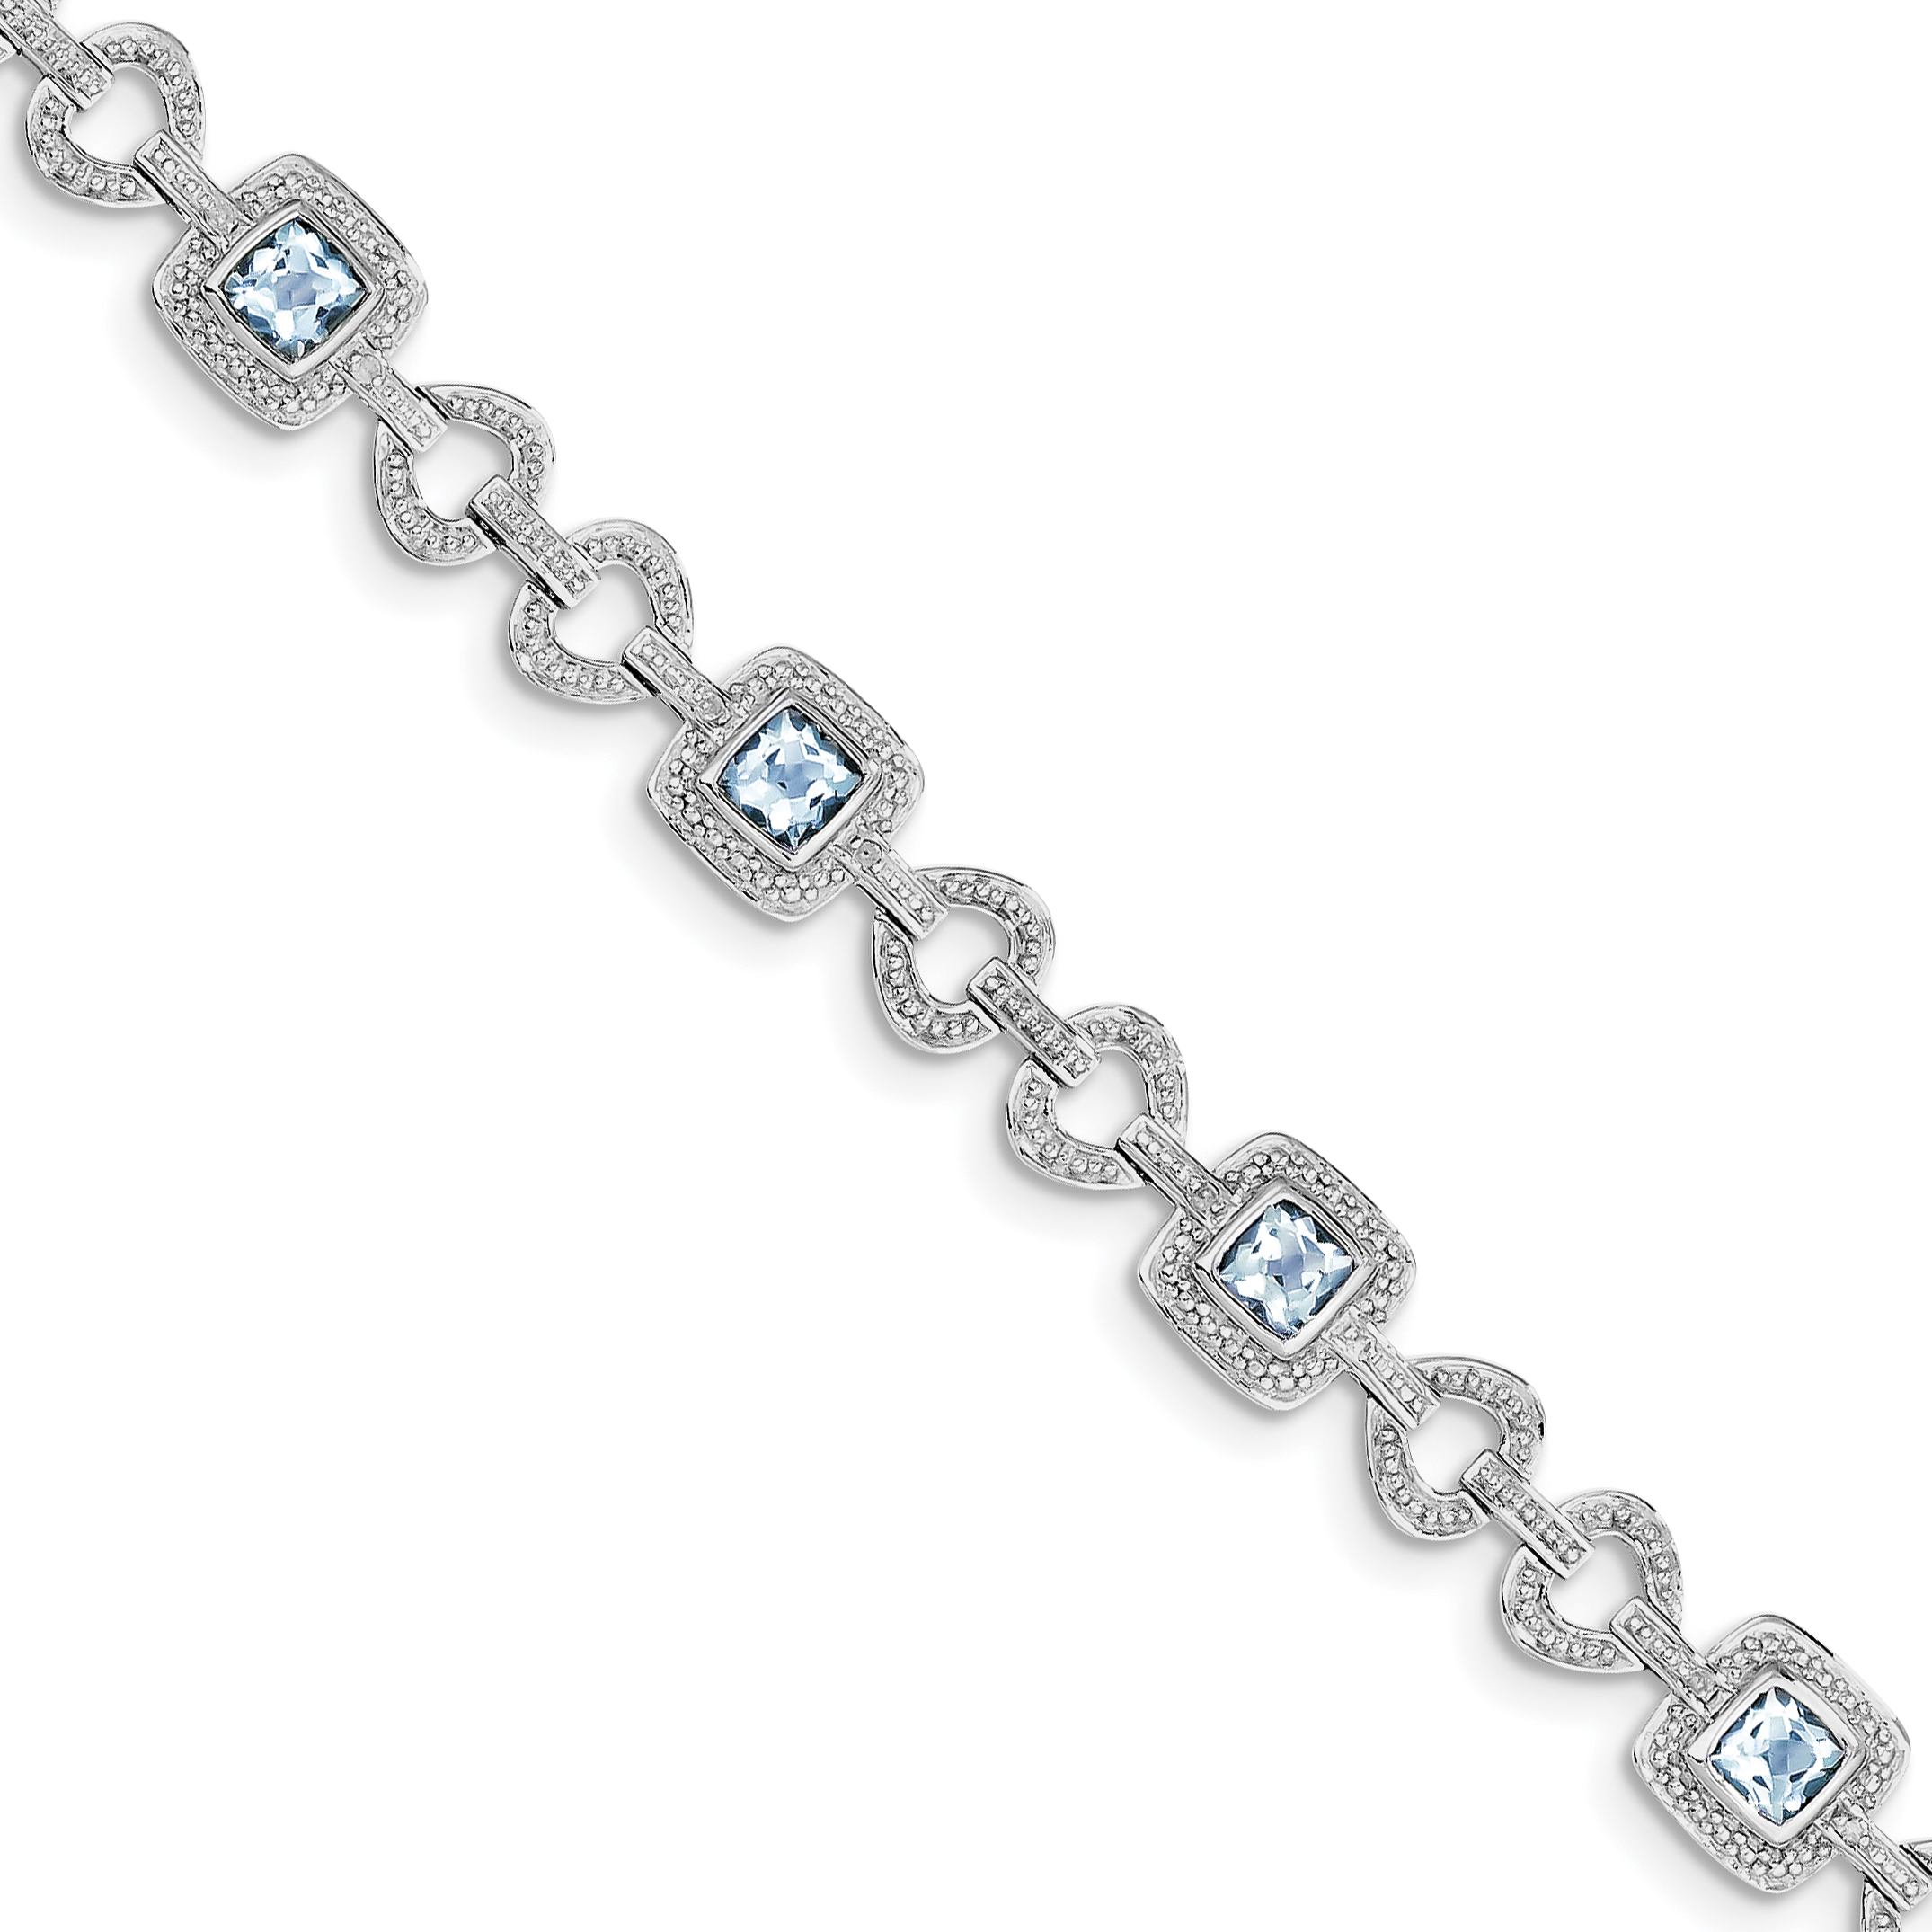 Sterling Silver Rhodium-plated Diamond & Light Swiss Blue Topaz Bracelet by CoutureJewelers